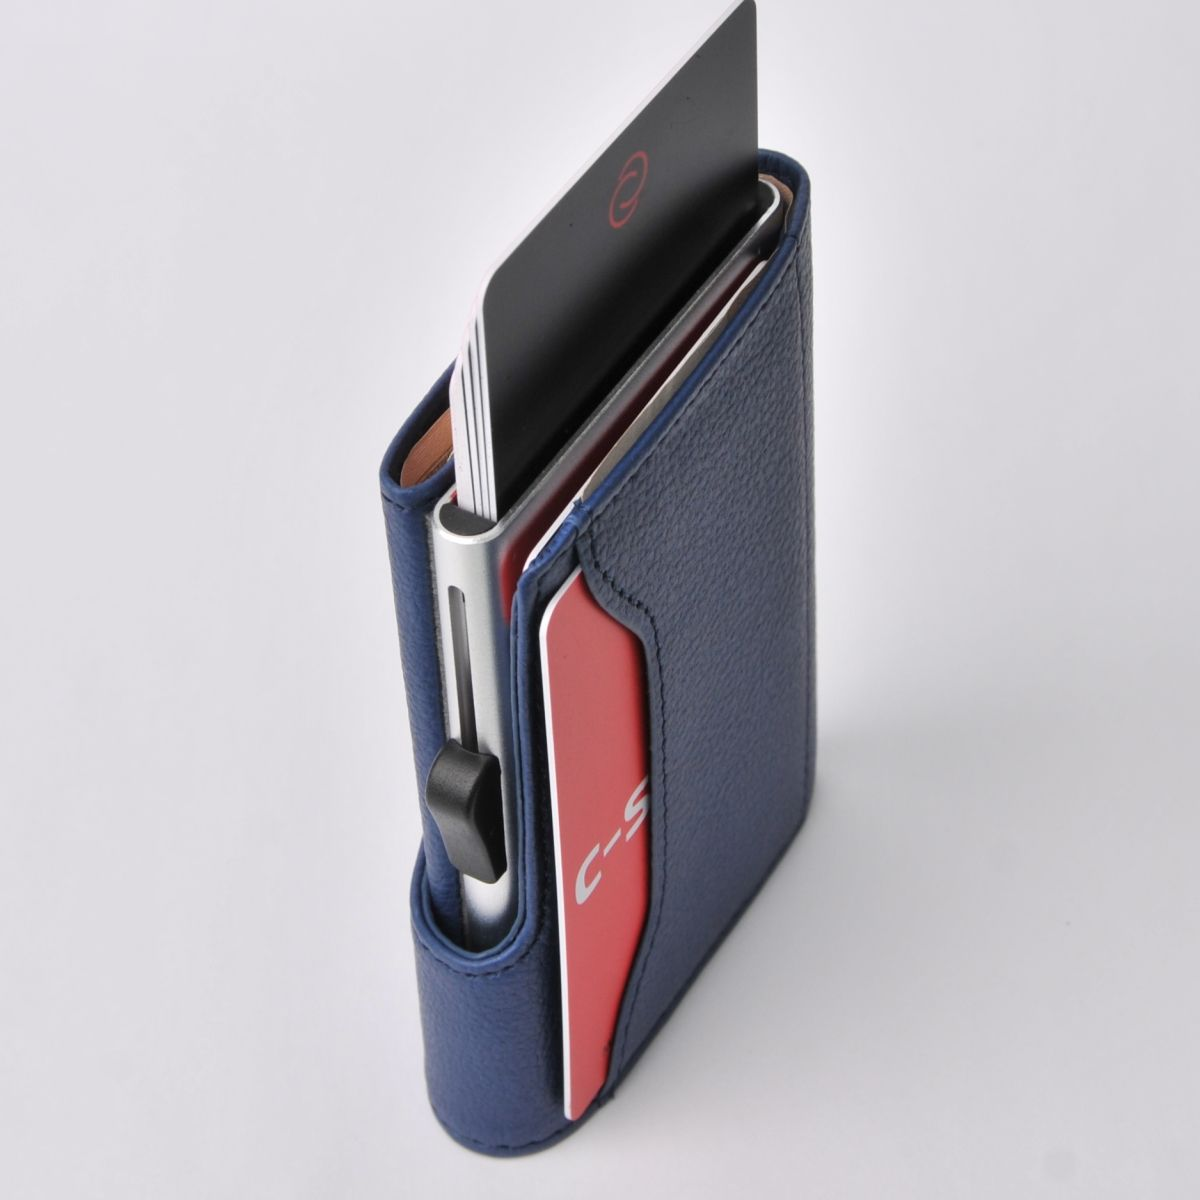 C-Secure Aluminum Card Holder with Genuine Leather - Blue Marino